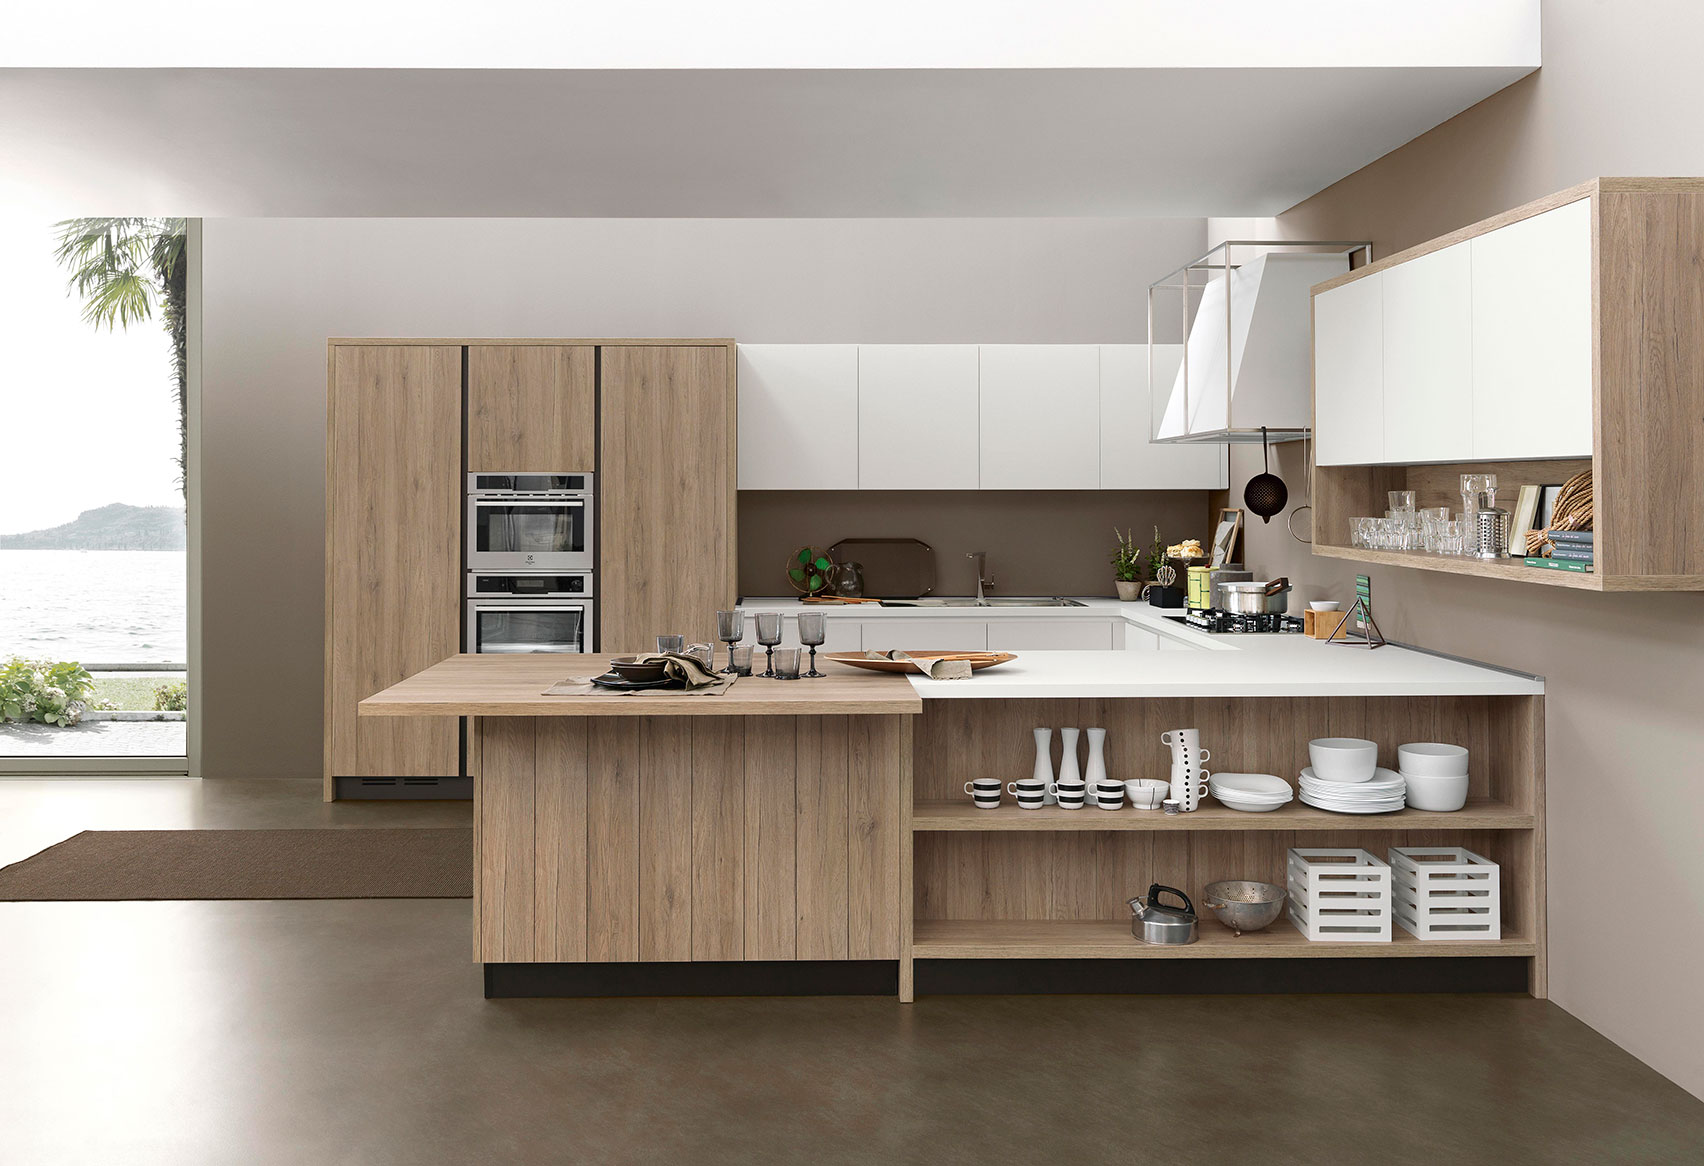 Decotips tendencias en cocinas para 2018 virlova style for Tendencias de muebles 2016